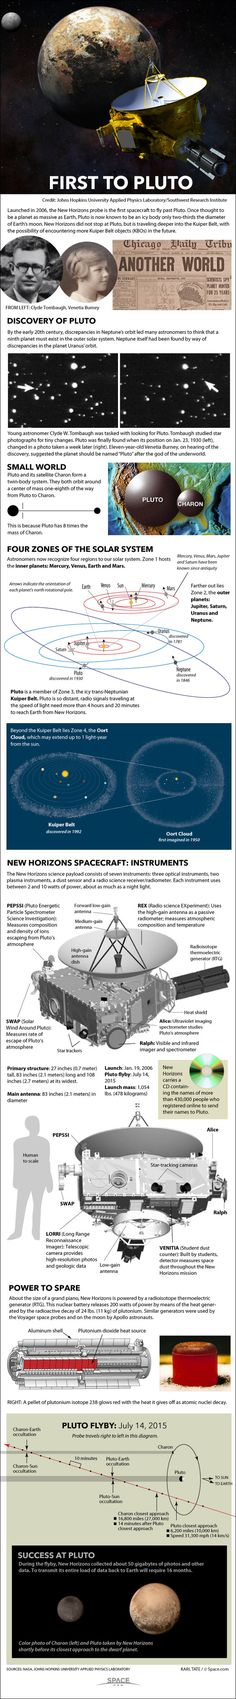 New Horizons becomes the first probe to explore Pluto in mid-2015. Credit: By Karl Tate, Infographics Artist Launched in 2006, the New Horizons probe is the first spacecraft to fly past Pluto. Once thought to be a planet as massive as Earth, Pluto is now known to be an icy body only two-thirds the diameter of Earth's moon. New Horizons did not stop at Pluto, but is traveling deeper into the Kuiper Belt, with the possibility of encountering more Kuiper Belt objects (KBOs) in the future.